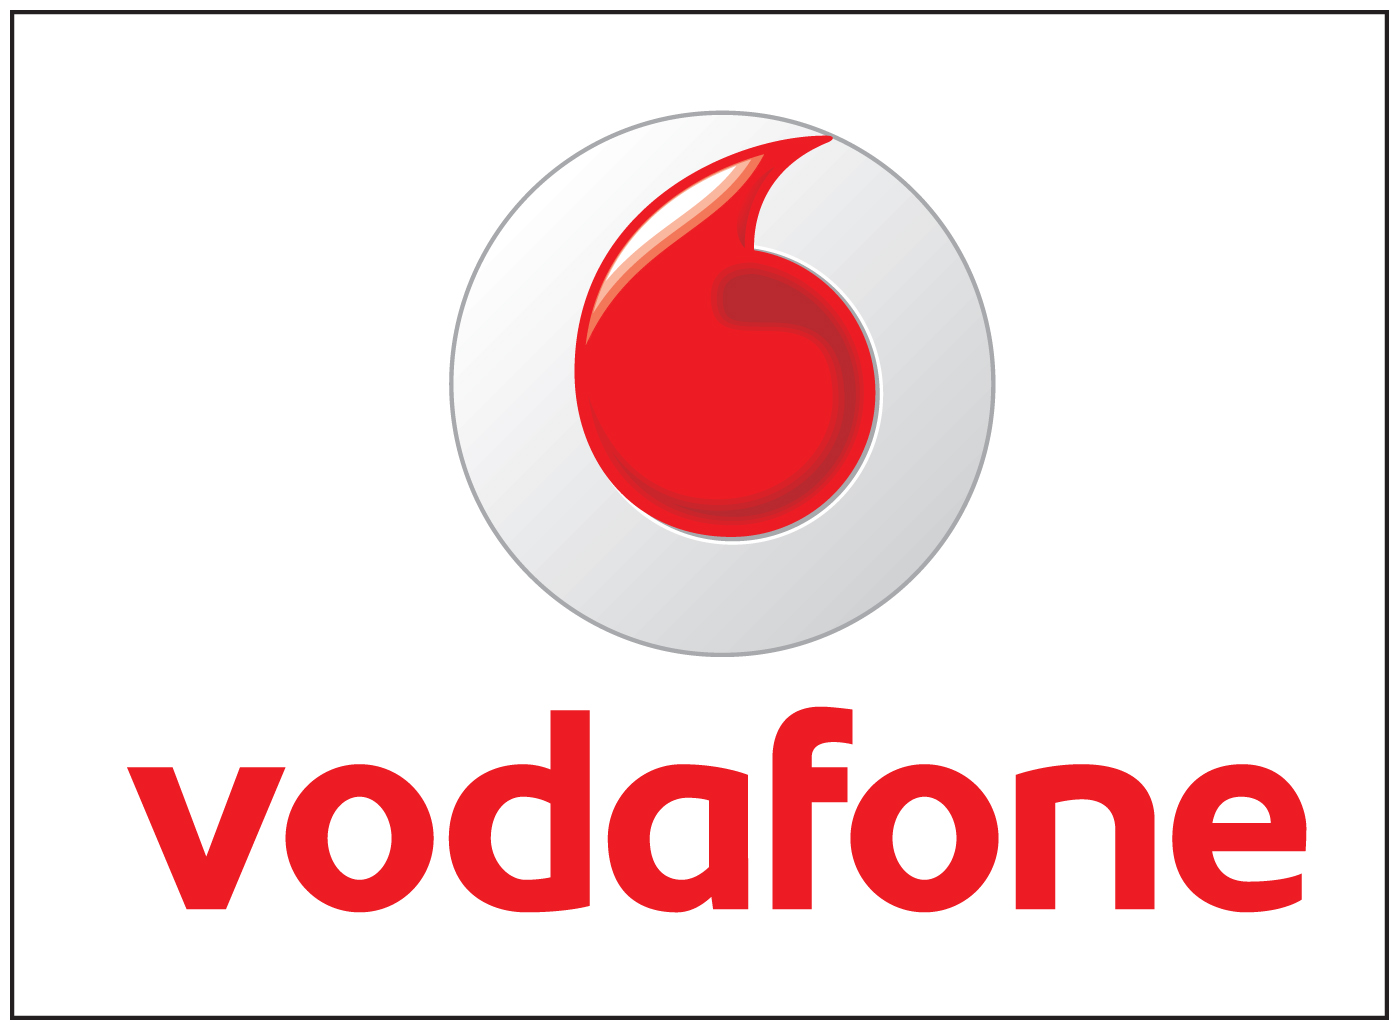 Sriwijaya Air Vector Logo Download Share A Logo Vector Logos High Resolution Logos Logo Designs Vodafone Logo Vector 1399x1030